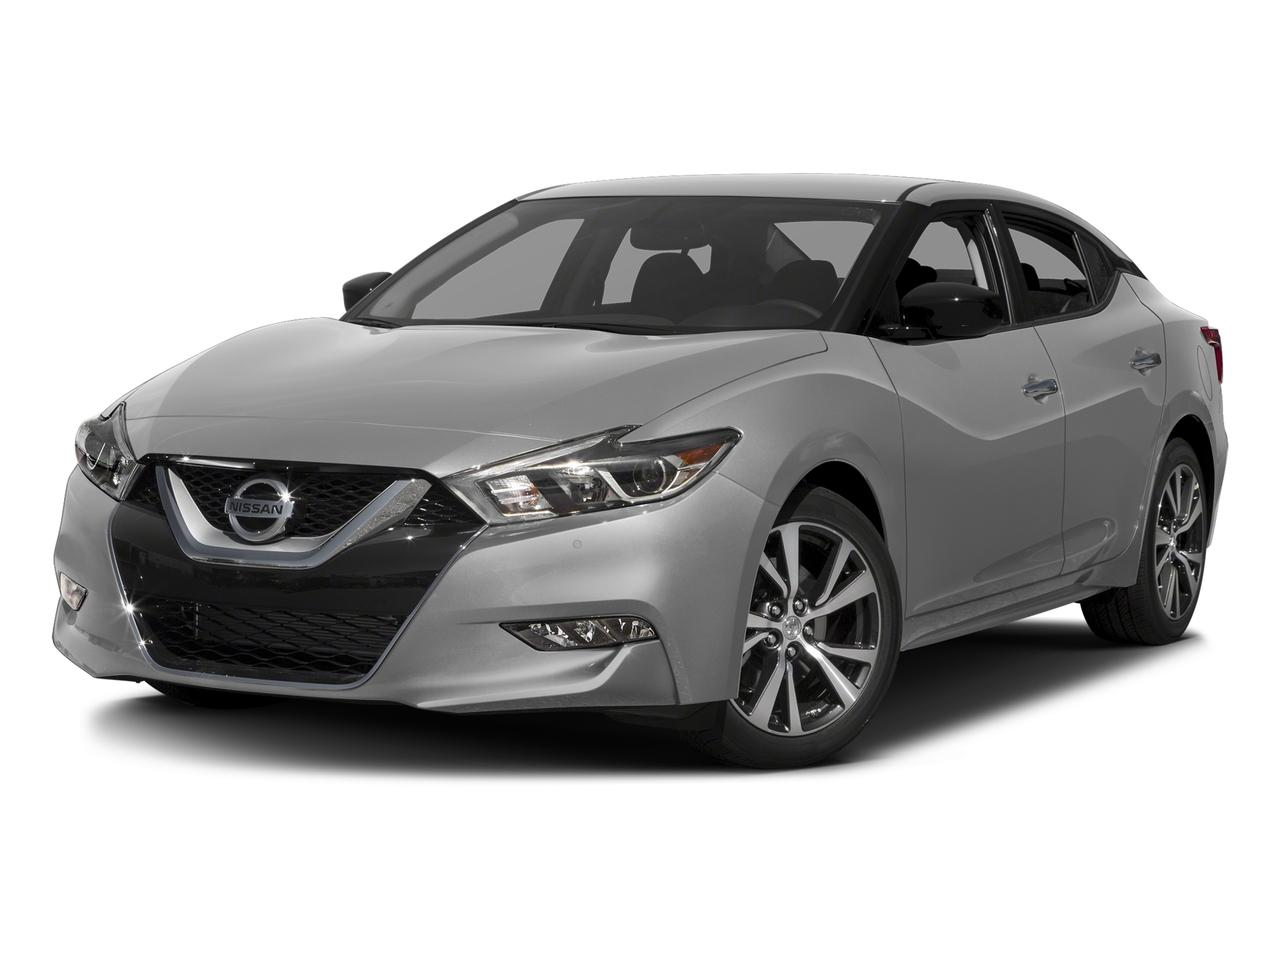 2017 Nissan Maxima Vehicle Photo in Independence, MO 64055